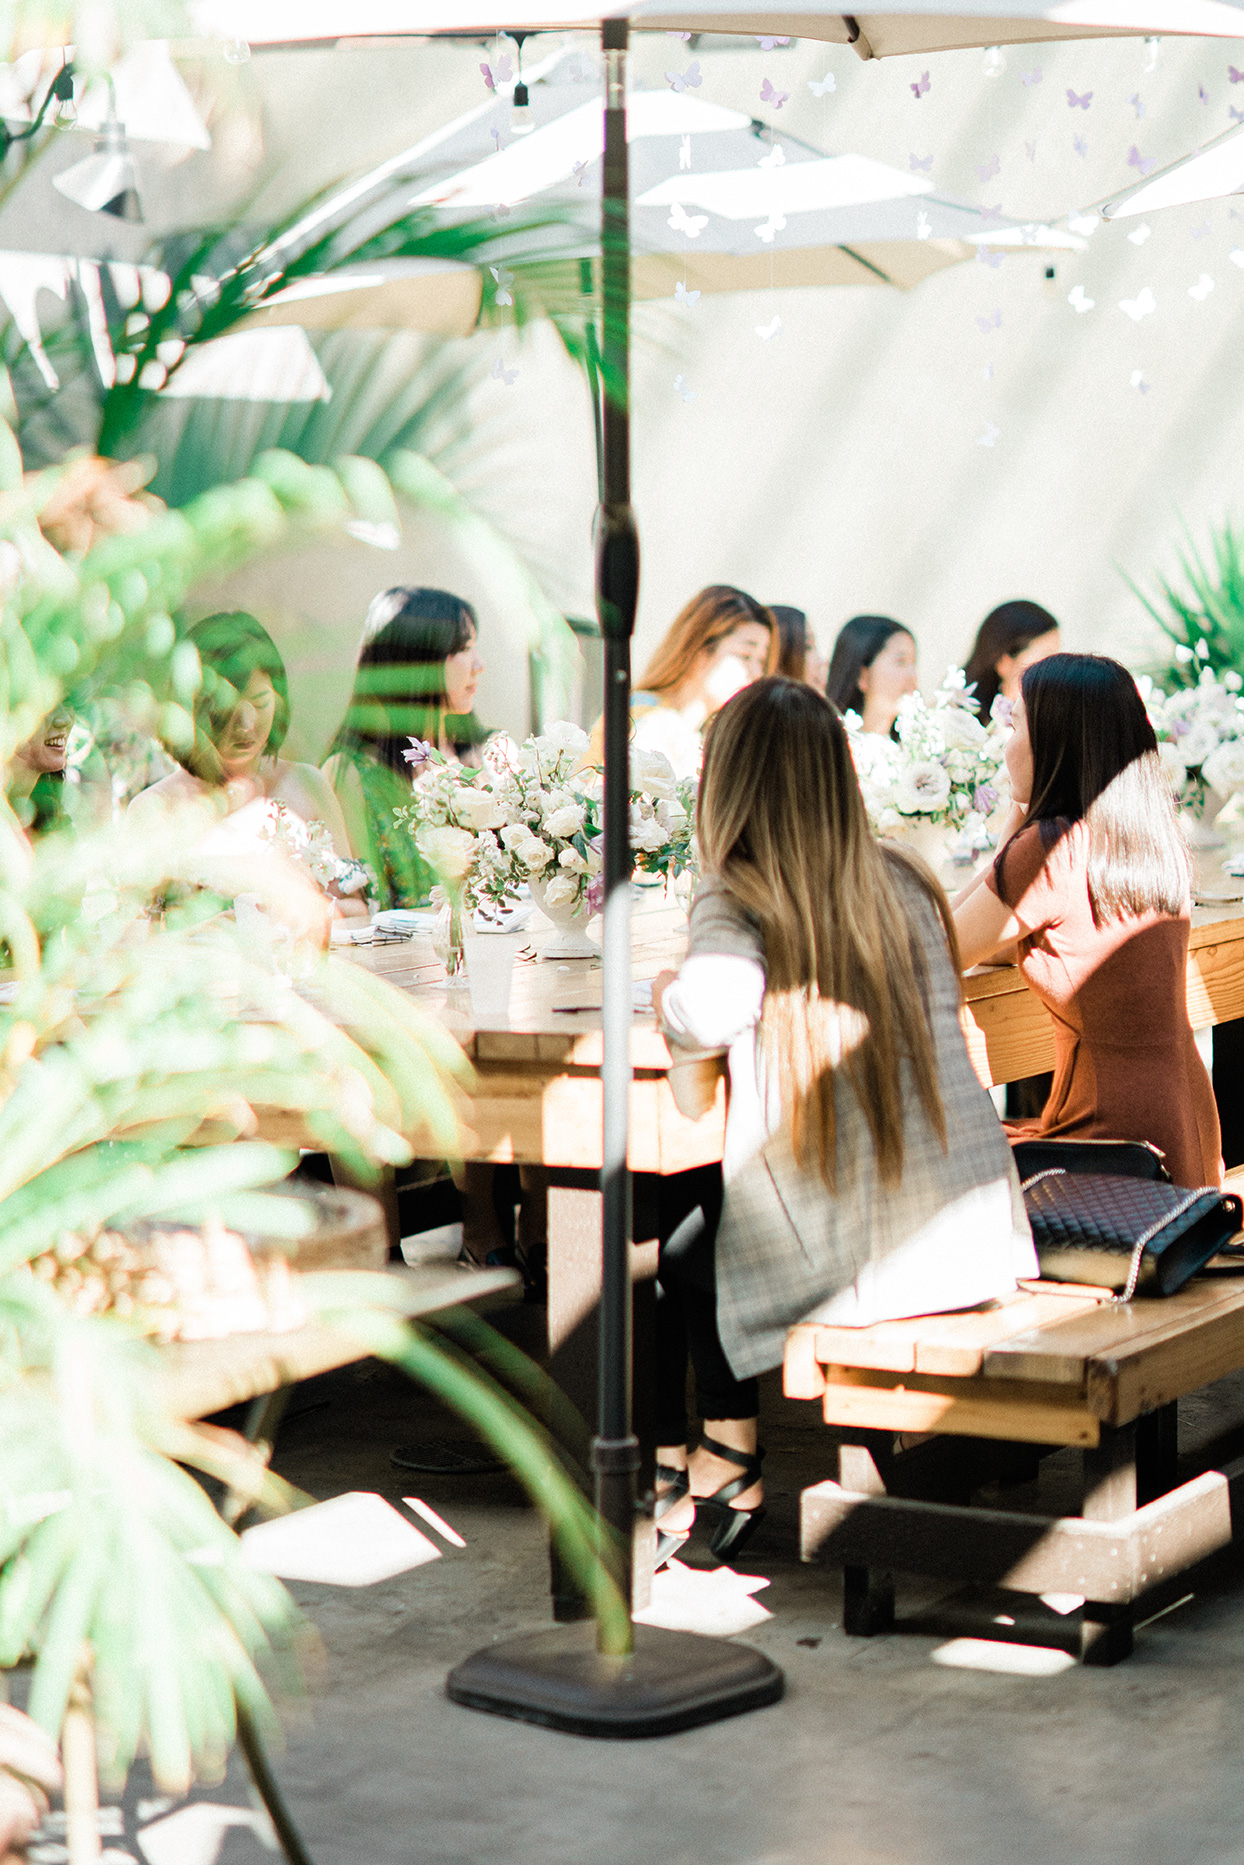 sally bridal shower sunlit tables with greenery, flowers, and umbrellas